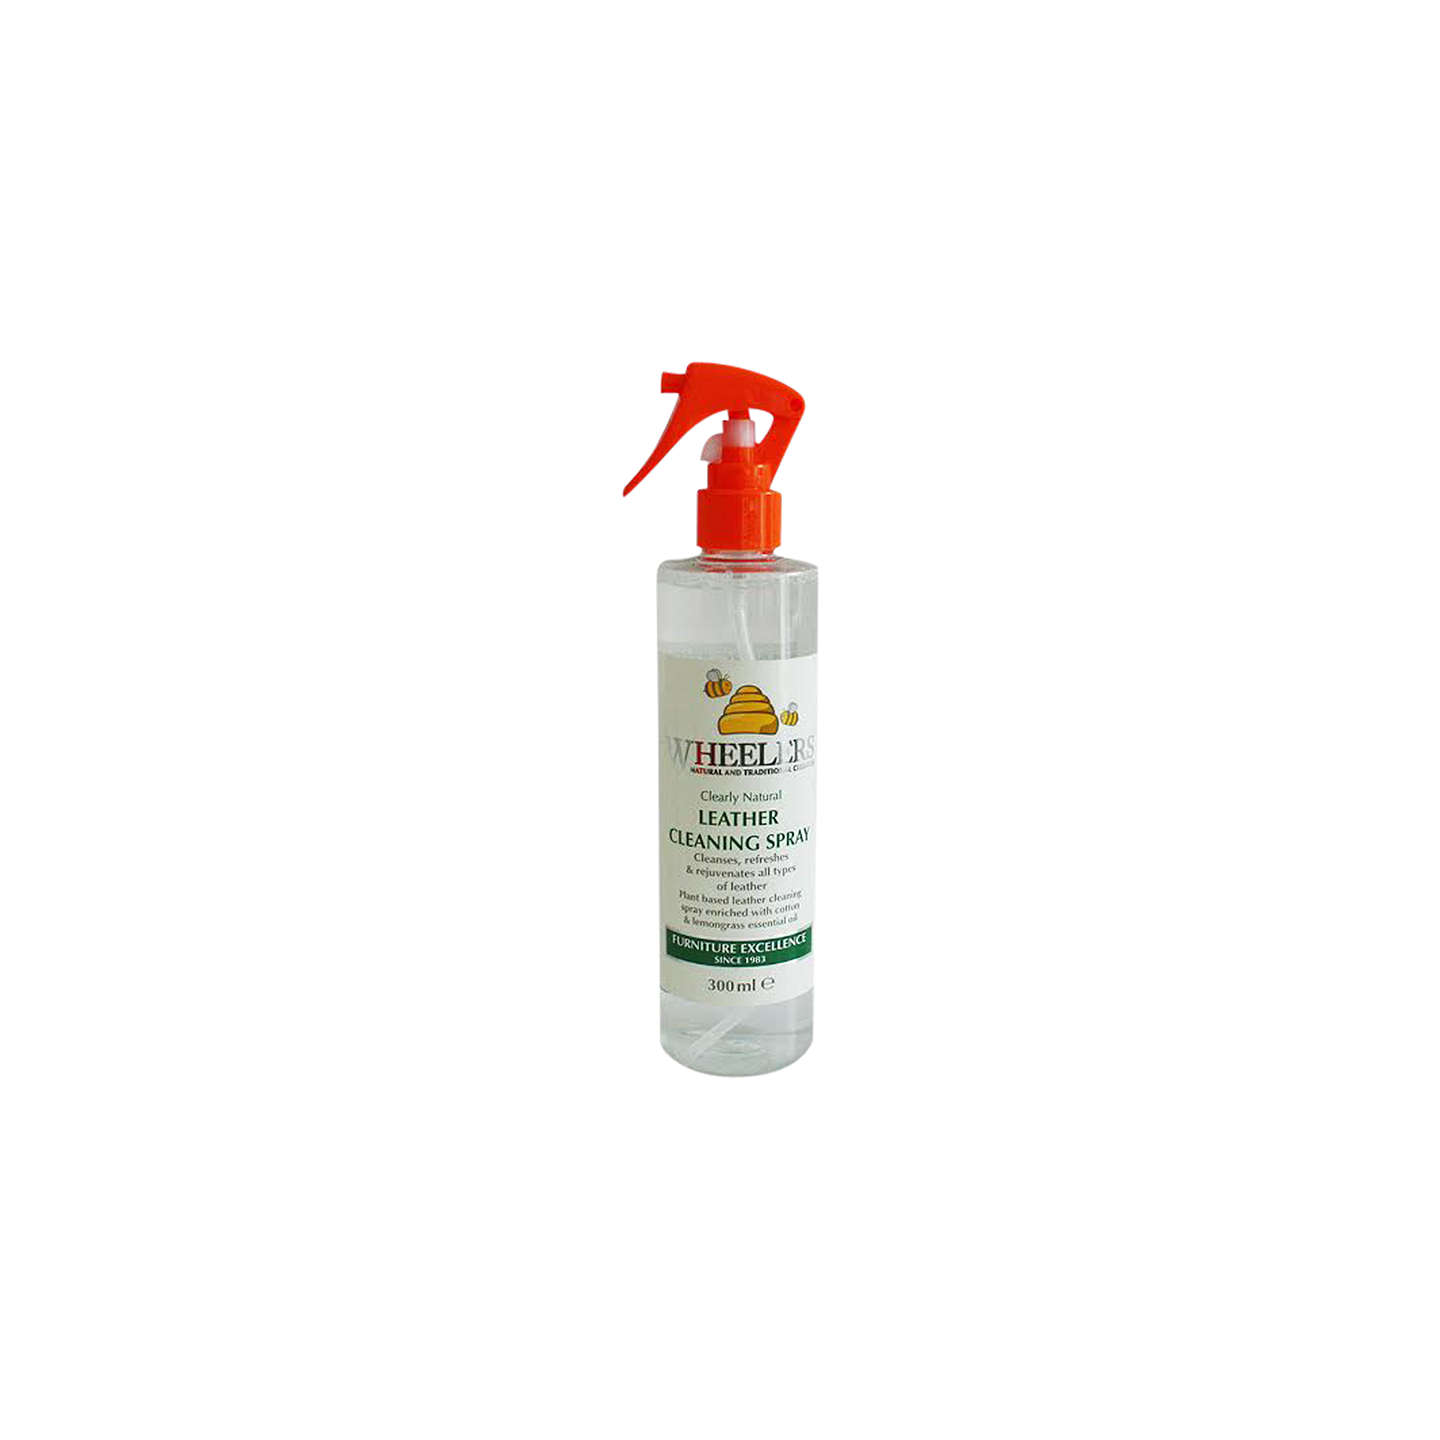 BuyWheelers Leather Spray, 300ml Online at johnlewis.com